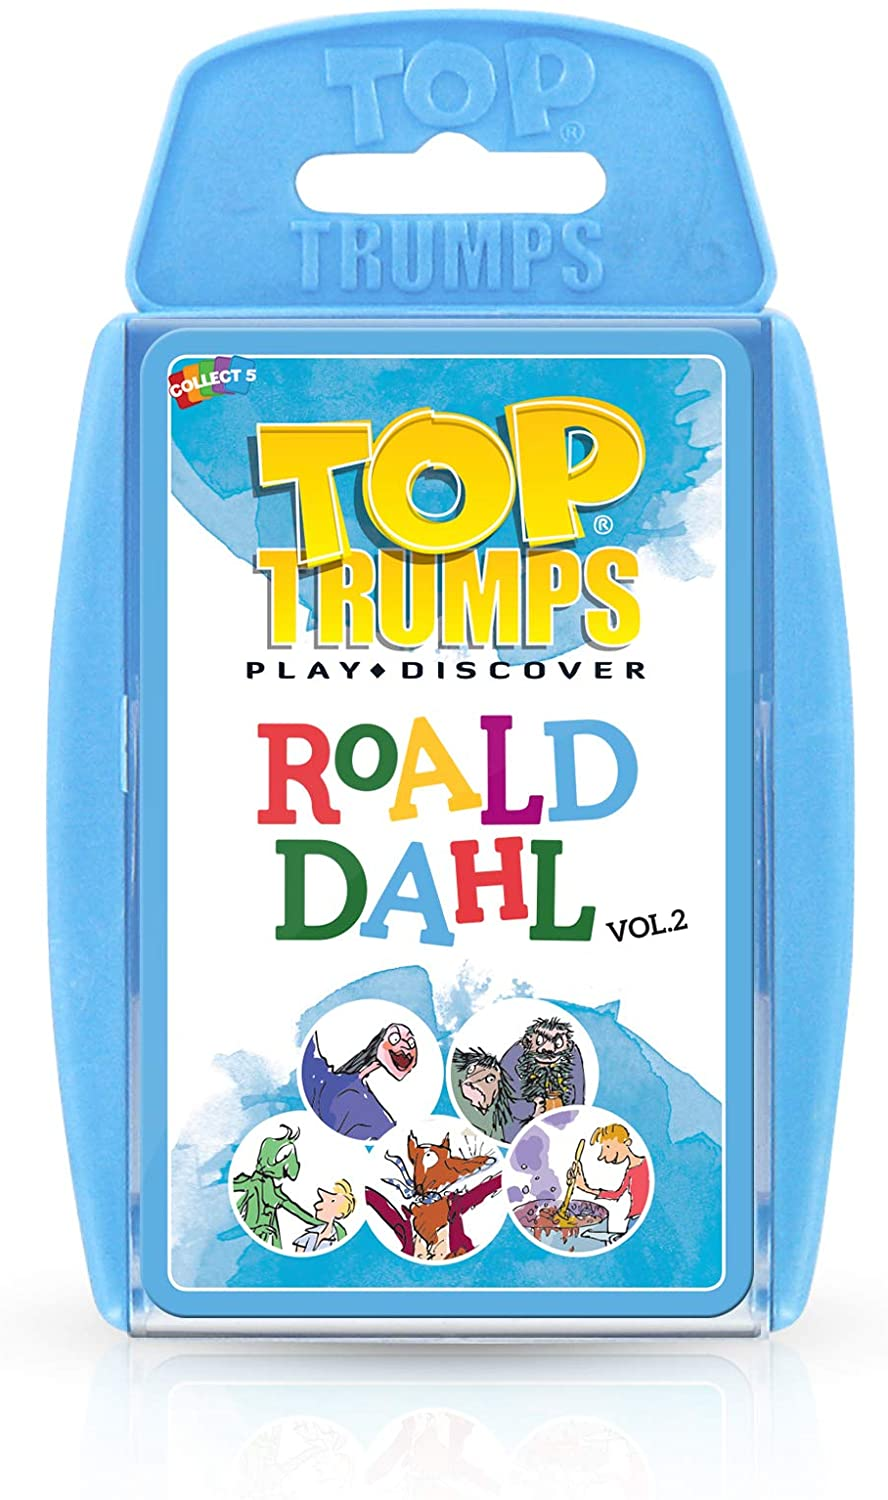 Top Trumps Roald Dahl